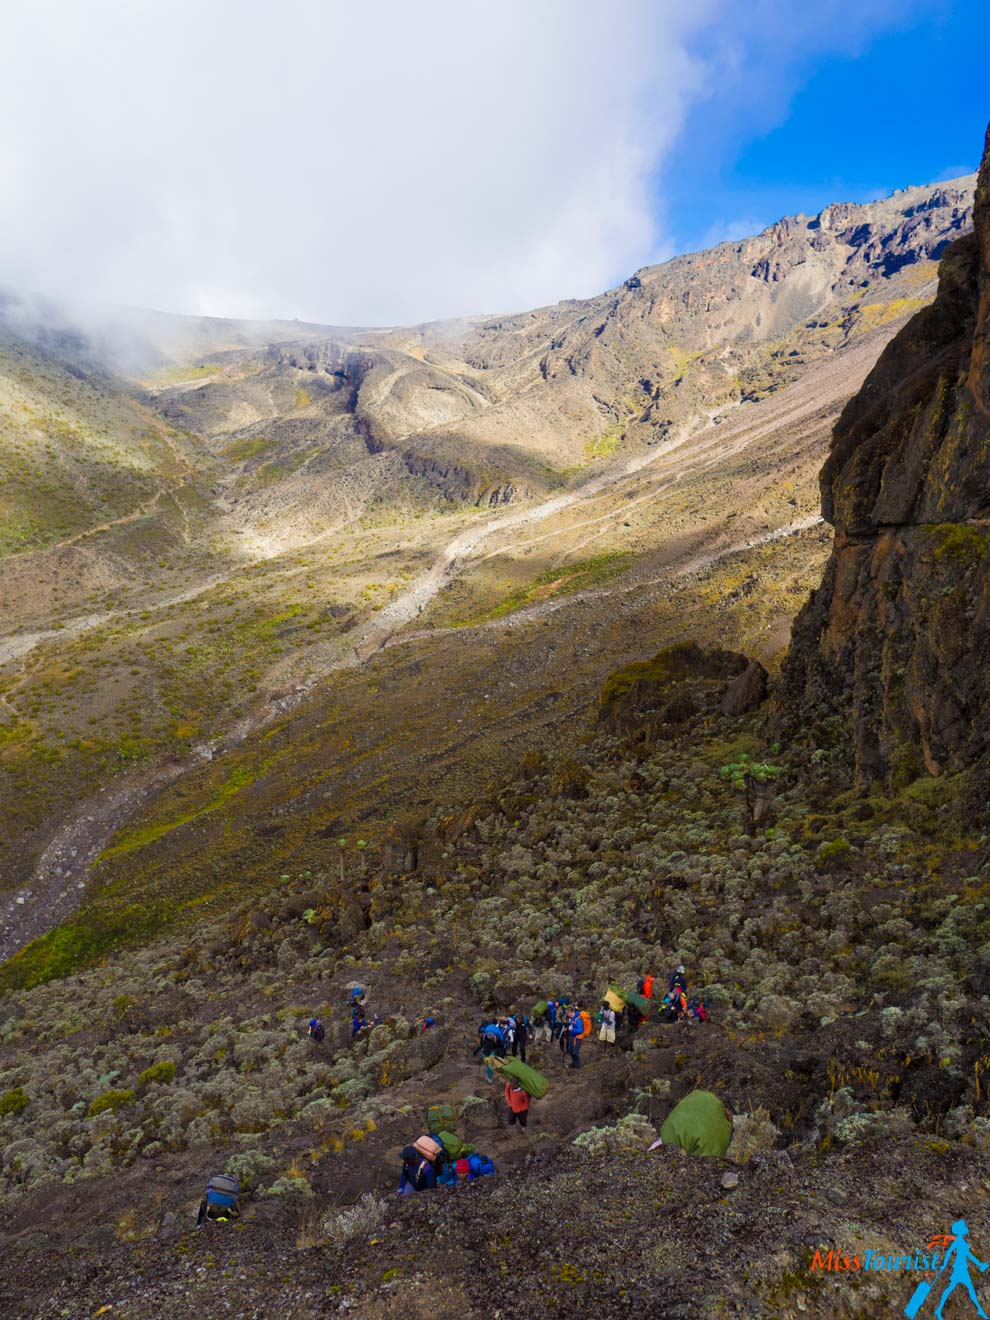 "Climbing Kilimanjaro – 7 Things You Should Know Before You Go 29"" class=""wp-image-27813"" width=""299"" height=""397"" srcset=""https://misstourist.com/wp-content/uploads/2019/04/Climbing-Kilimanjaro-–-7-Things-You-Should-Know-Before-You-Go-29-225x300.jpg 225w, https://misstourist.com/wp-content/uploads/2019/04/Climbing-Kilimanjaro-–-7-Things-You-Should-Know-Before-You-Go-29-400x533.jpg 400w, https://misstourist.com/wp-content/uploads/2019/04/Climbing-Kilimanjaro-–-7-Things-You-Should-Know-Before-You-Go-29-225x300@2x.jpg 450w, https://misstourist.com/wp-content/uploads/2019/04/Climbing-Kilimanjaro-–-7-Things-You-Should-Know-Before-You-Go-29-400x533@2x.jpg 800w"" sizes=""(max-width: 299px) 100vw, 299px"